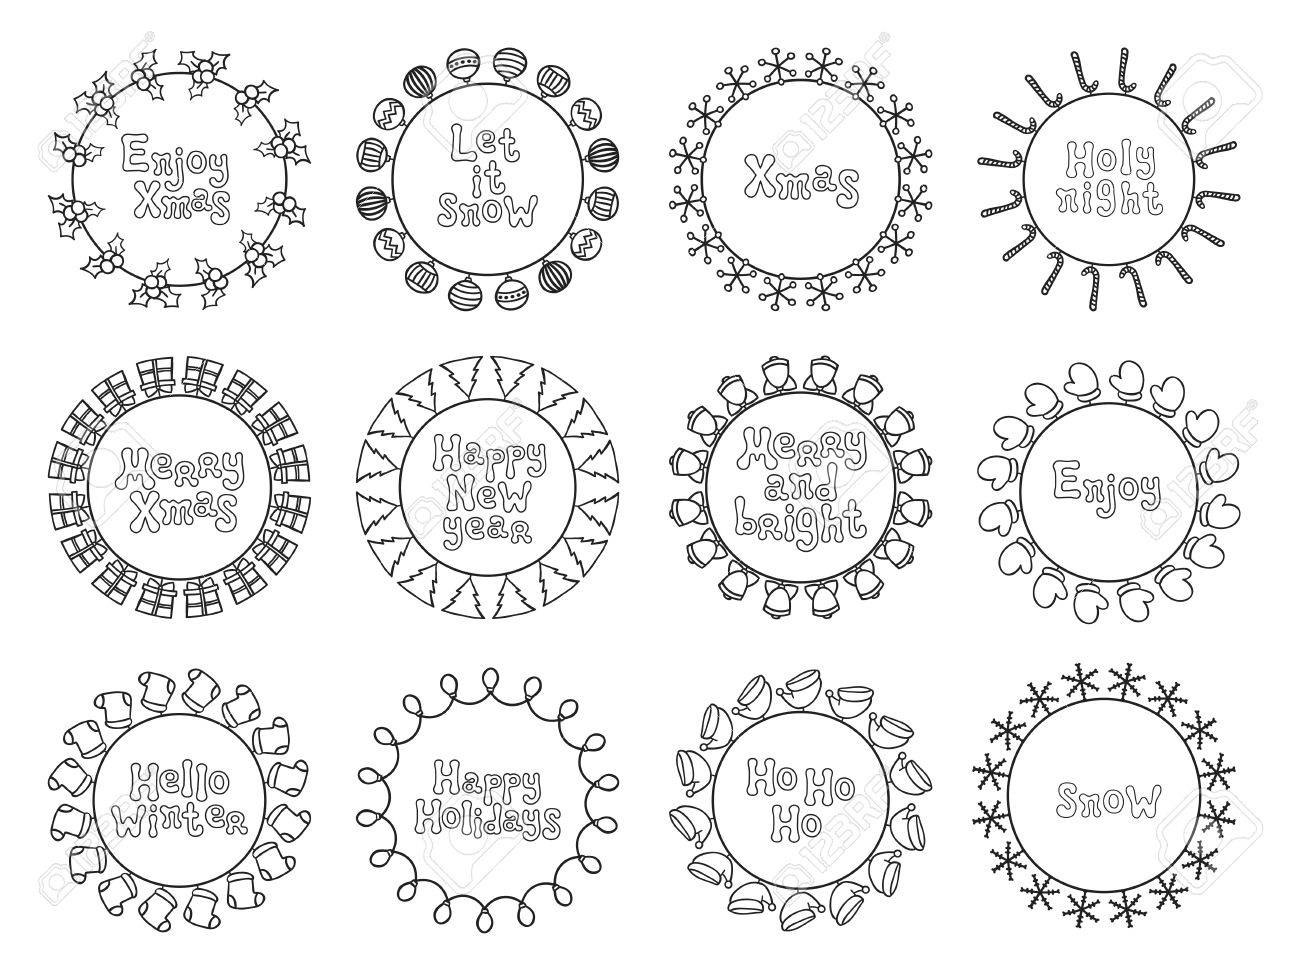 Merry Christmas New Year Wishes Labels Stickers And Badges. Hand ...